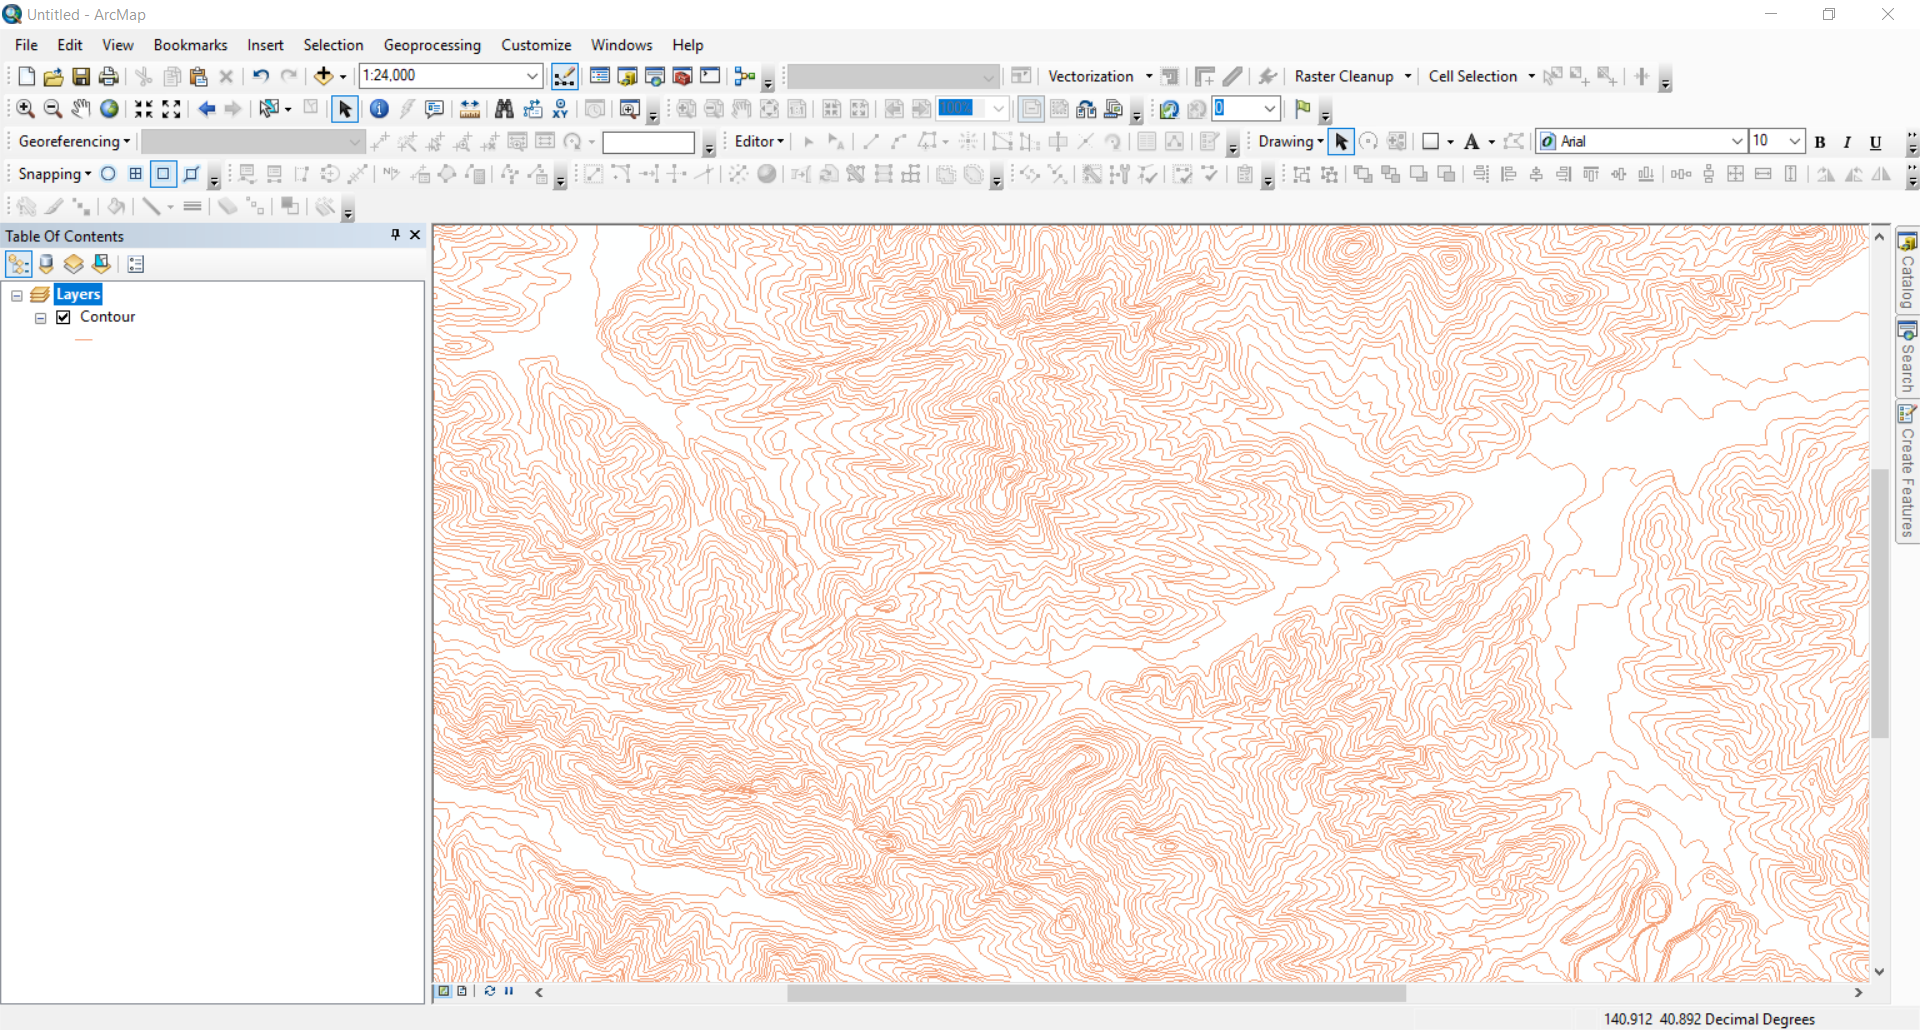 how to create a layer file in arcgis 10